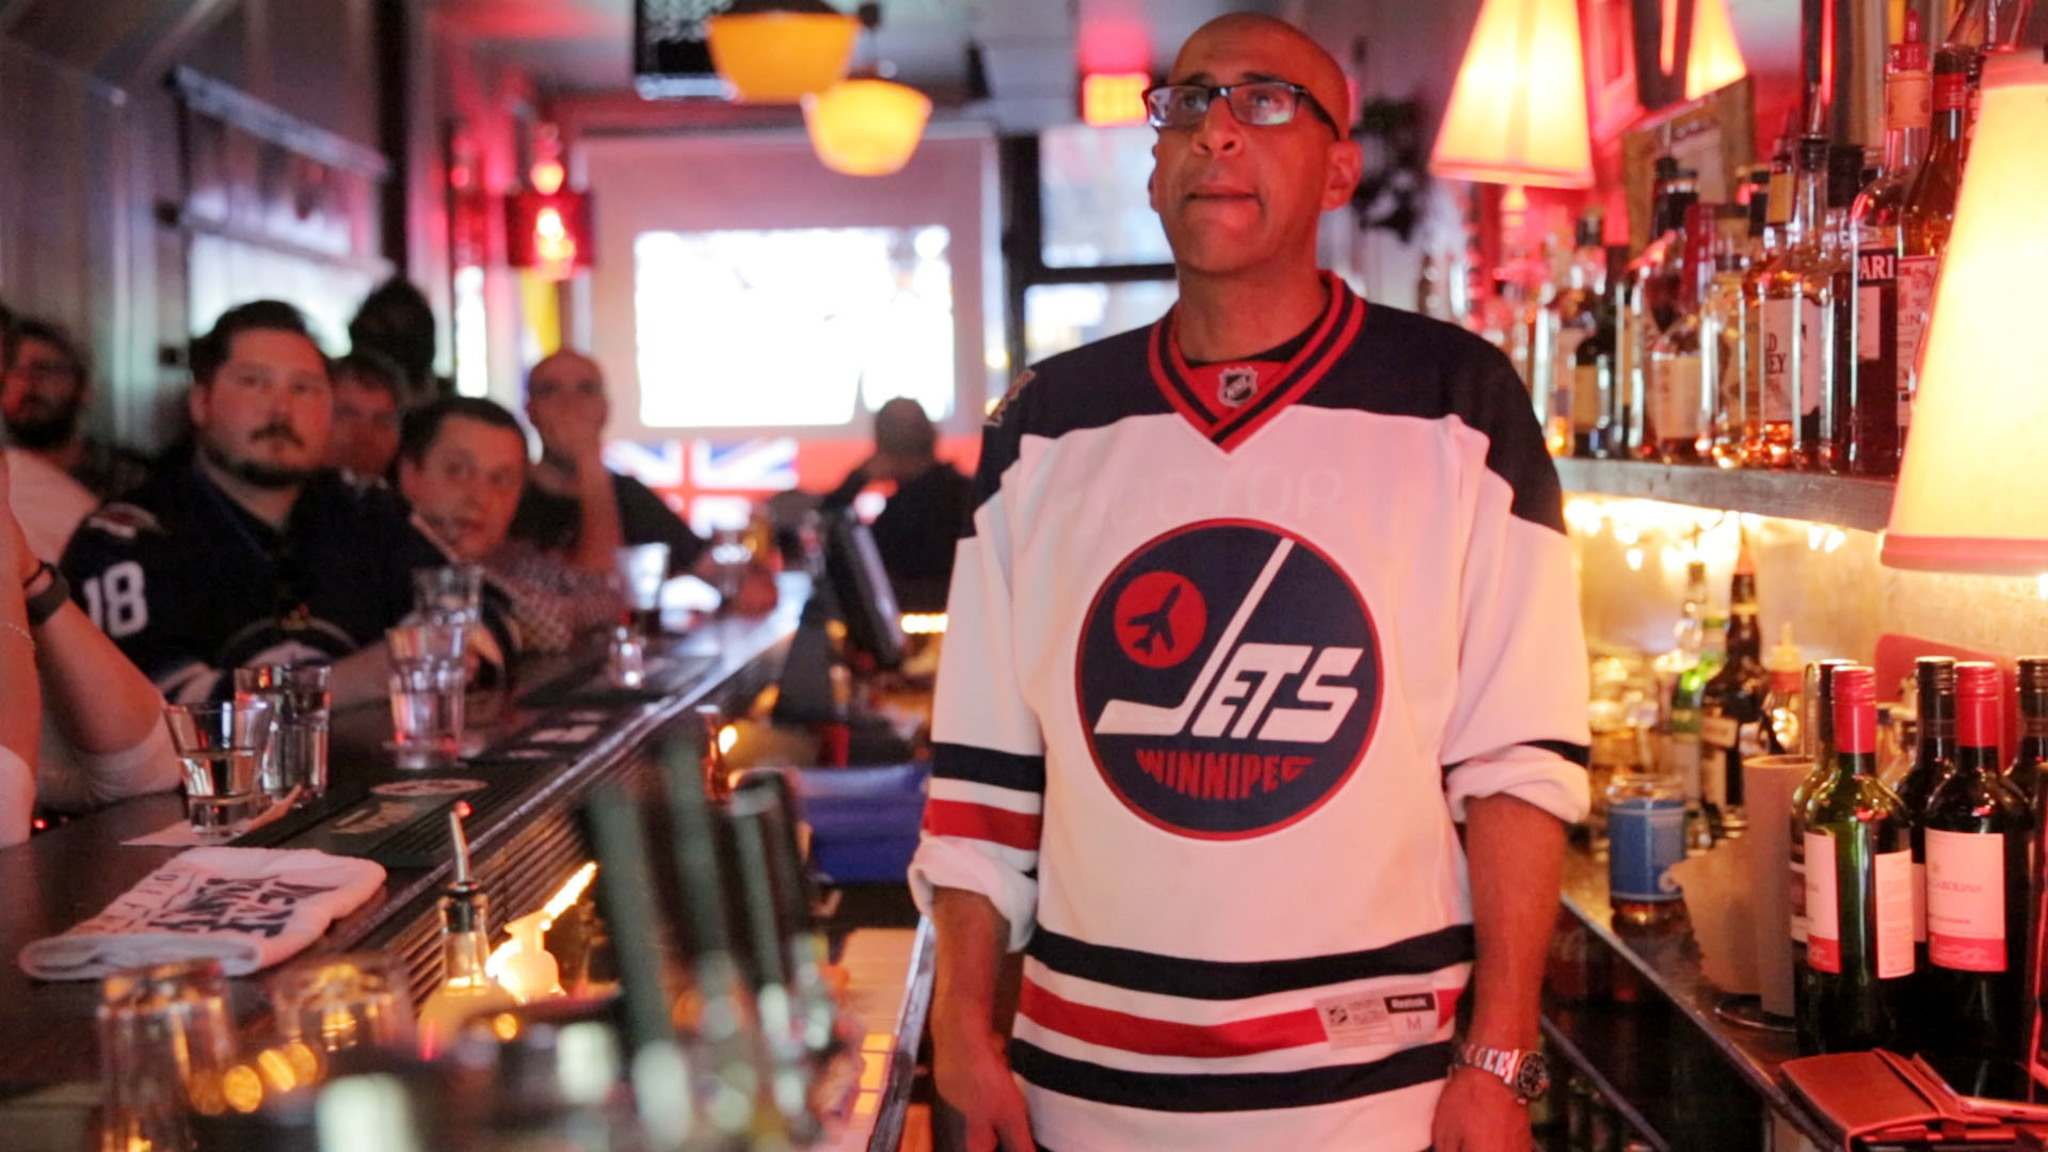 MIKE DEAL / WINNIPEG FREE PRESS</p><p>Danny Greaves, owner of the Motel Bar in Toronto, has created 'something special' by providing a space for Jets fans to gather.</p>